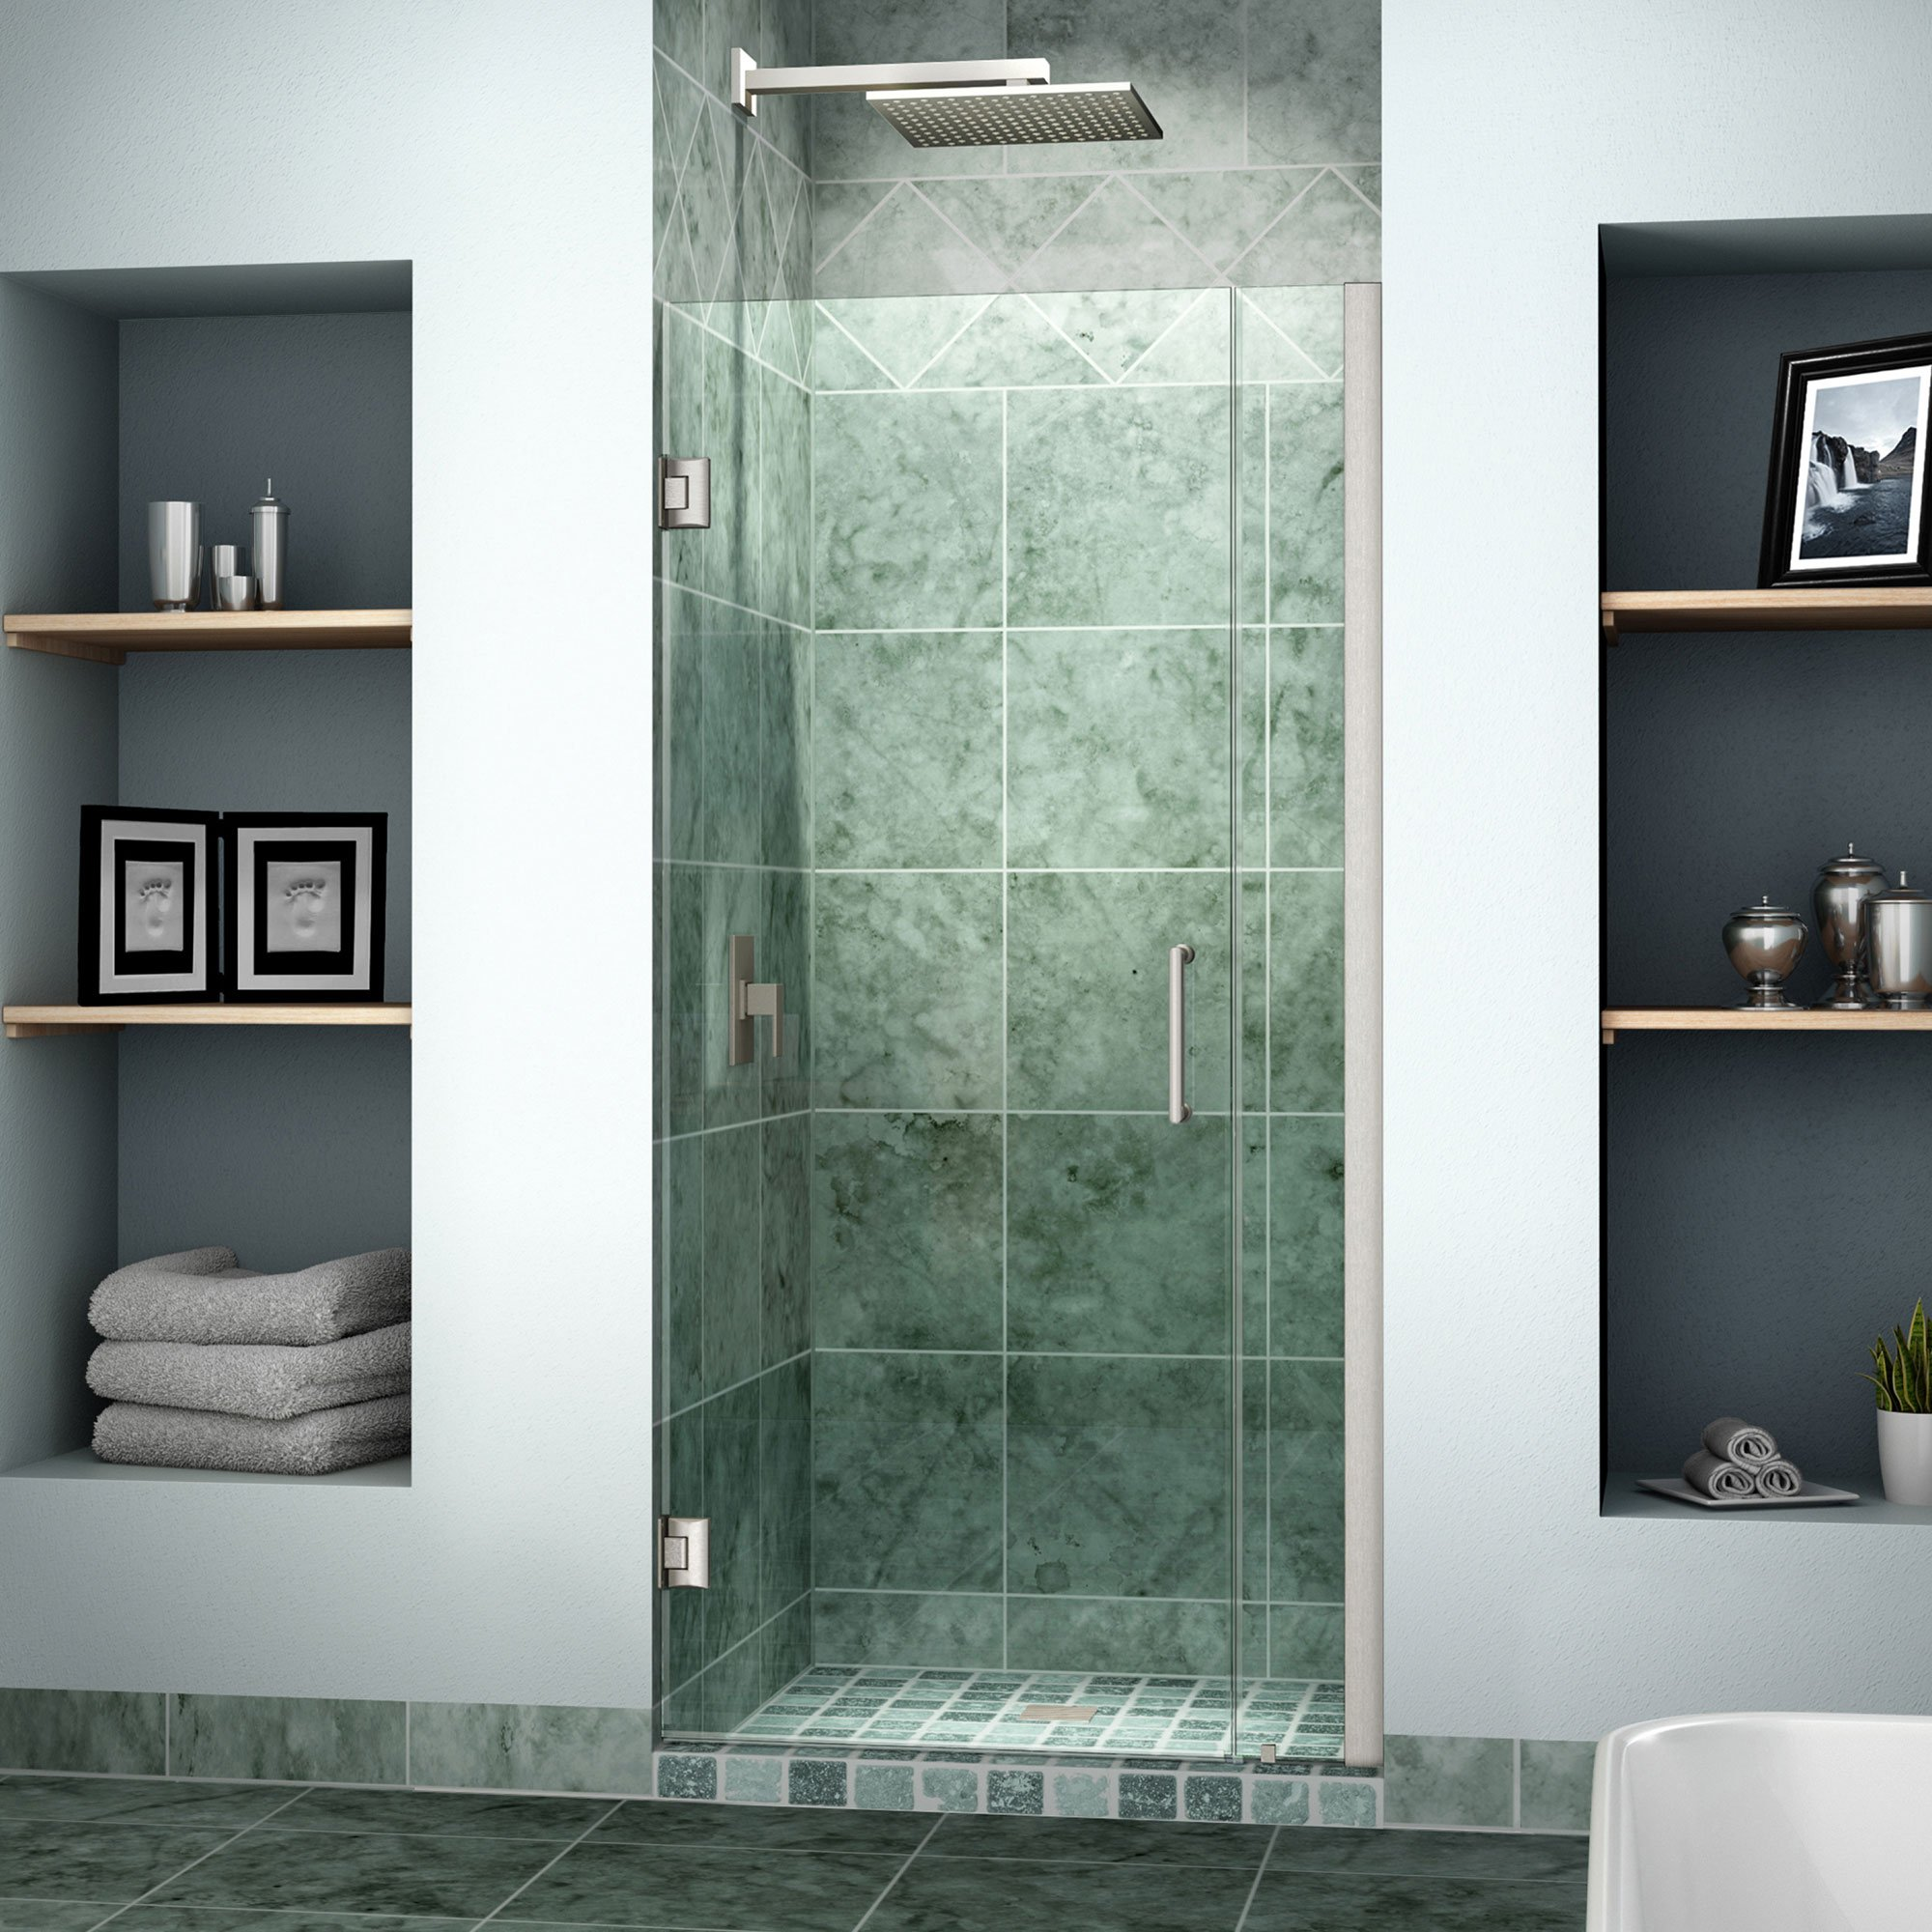 DreamLine Unidoor 33-34 in. Width, Frameless Hinged Shower Door, 3/8'' Glass, Brushed Nickel Finish by DreamLine